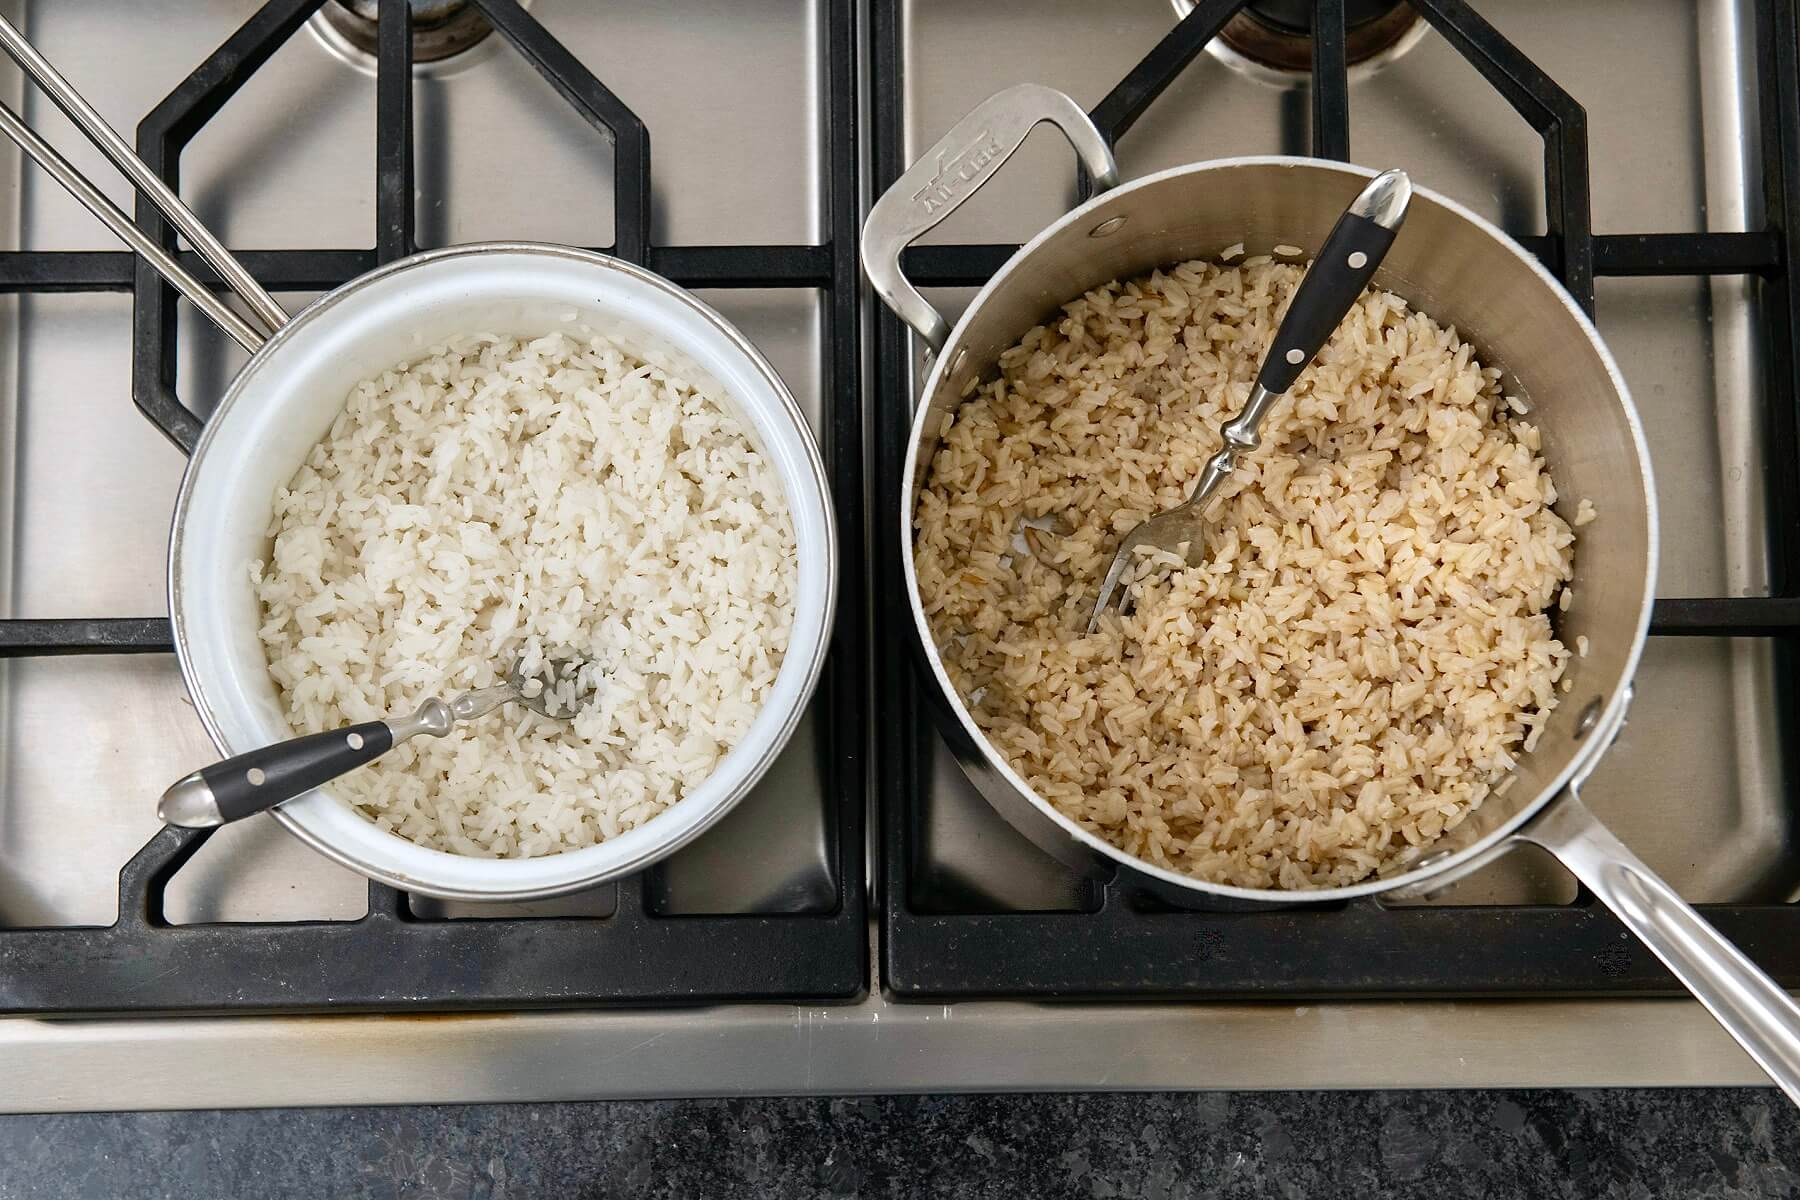 Asimple technique with an untraditional ratio of water-to-rice along with a fewhelpful hintsensures fluffy, perfectly cooked rice every time.